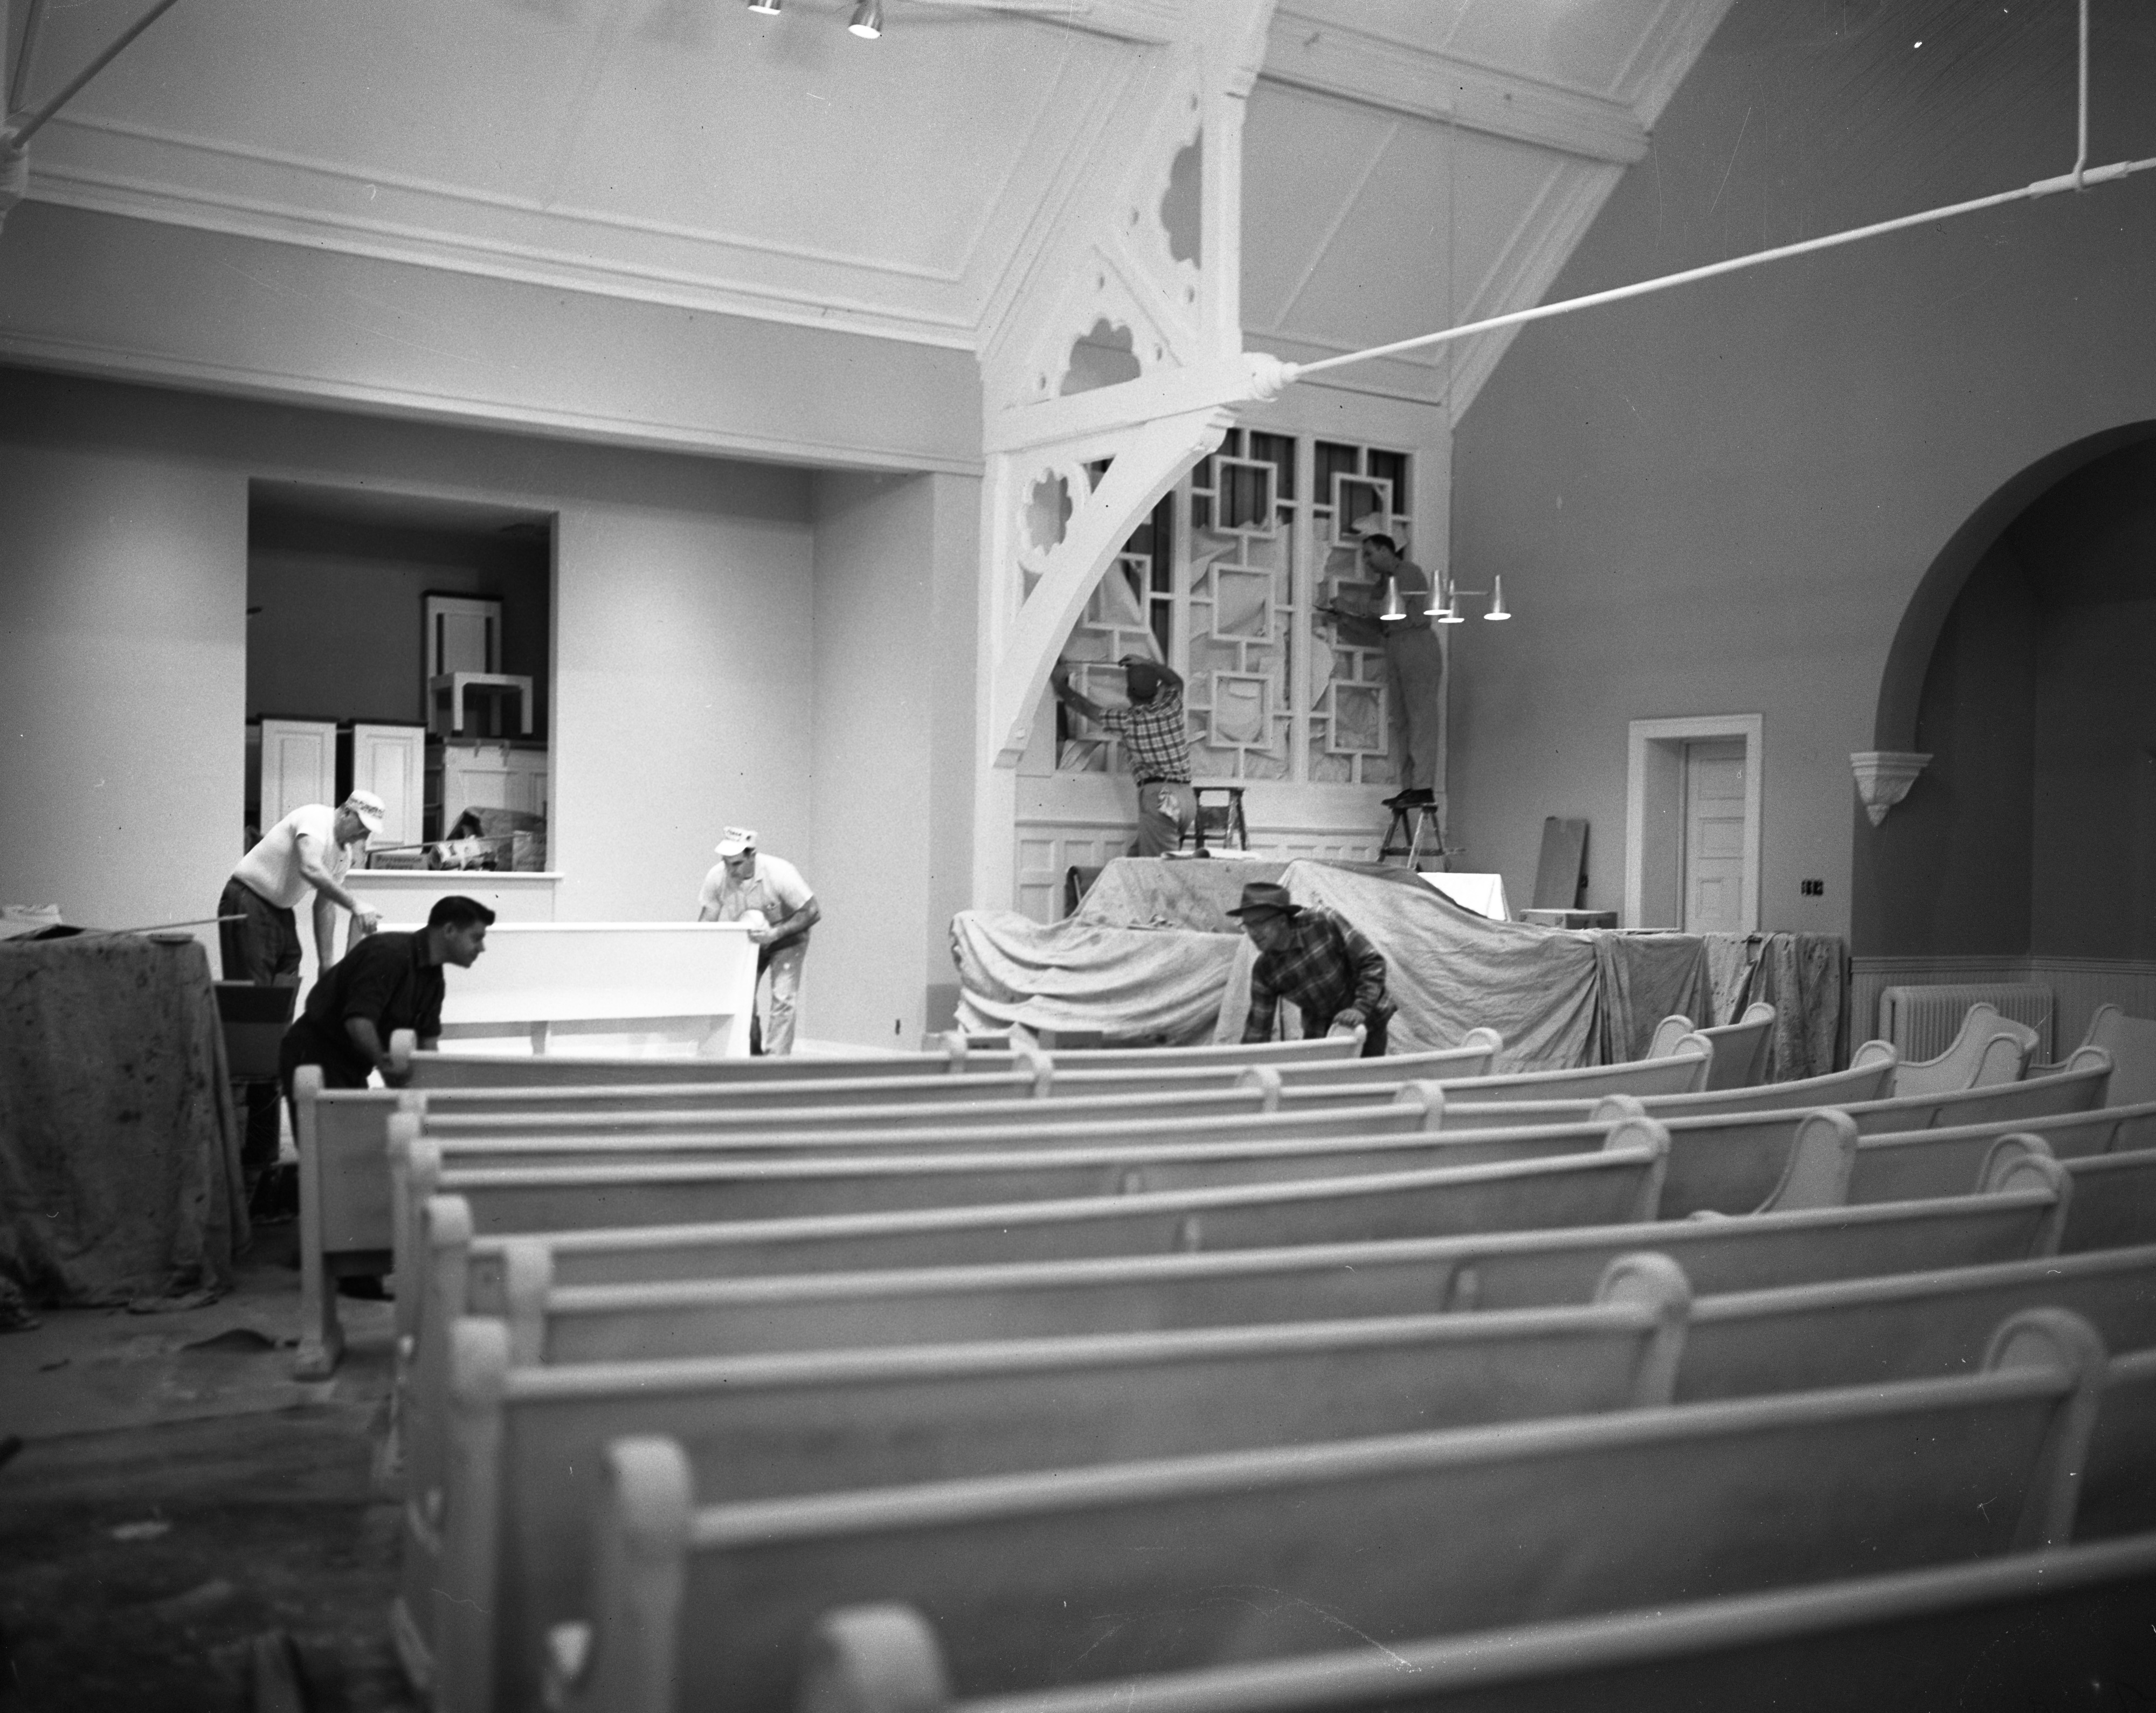 Members Help Remodel Interior of Memorial Christian Church, March 1959 image